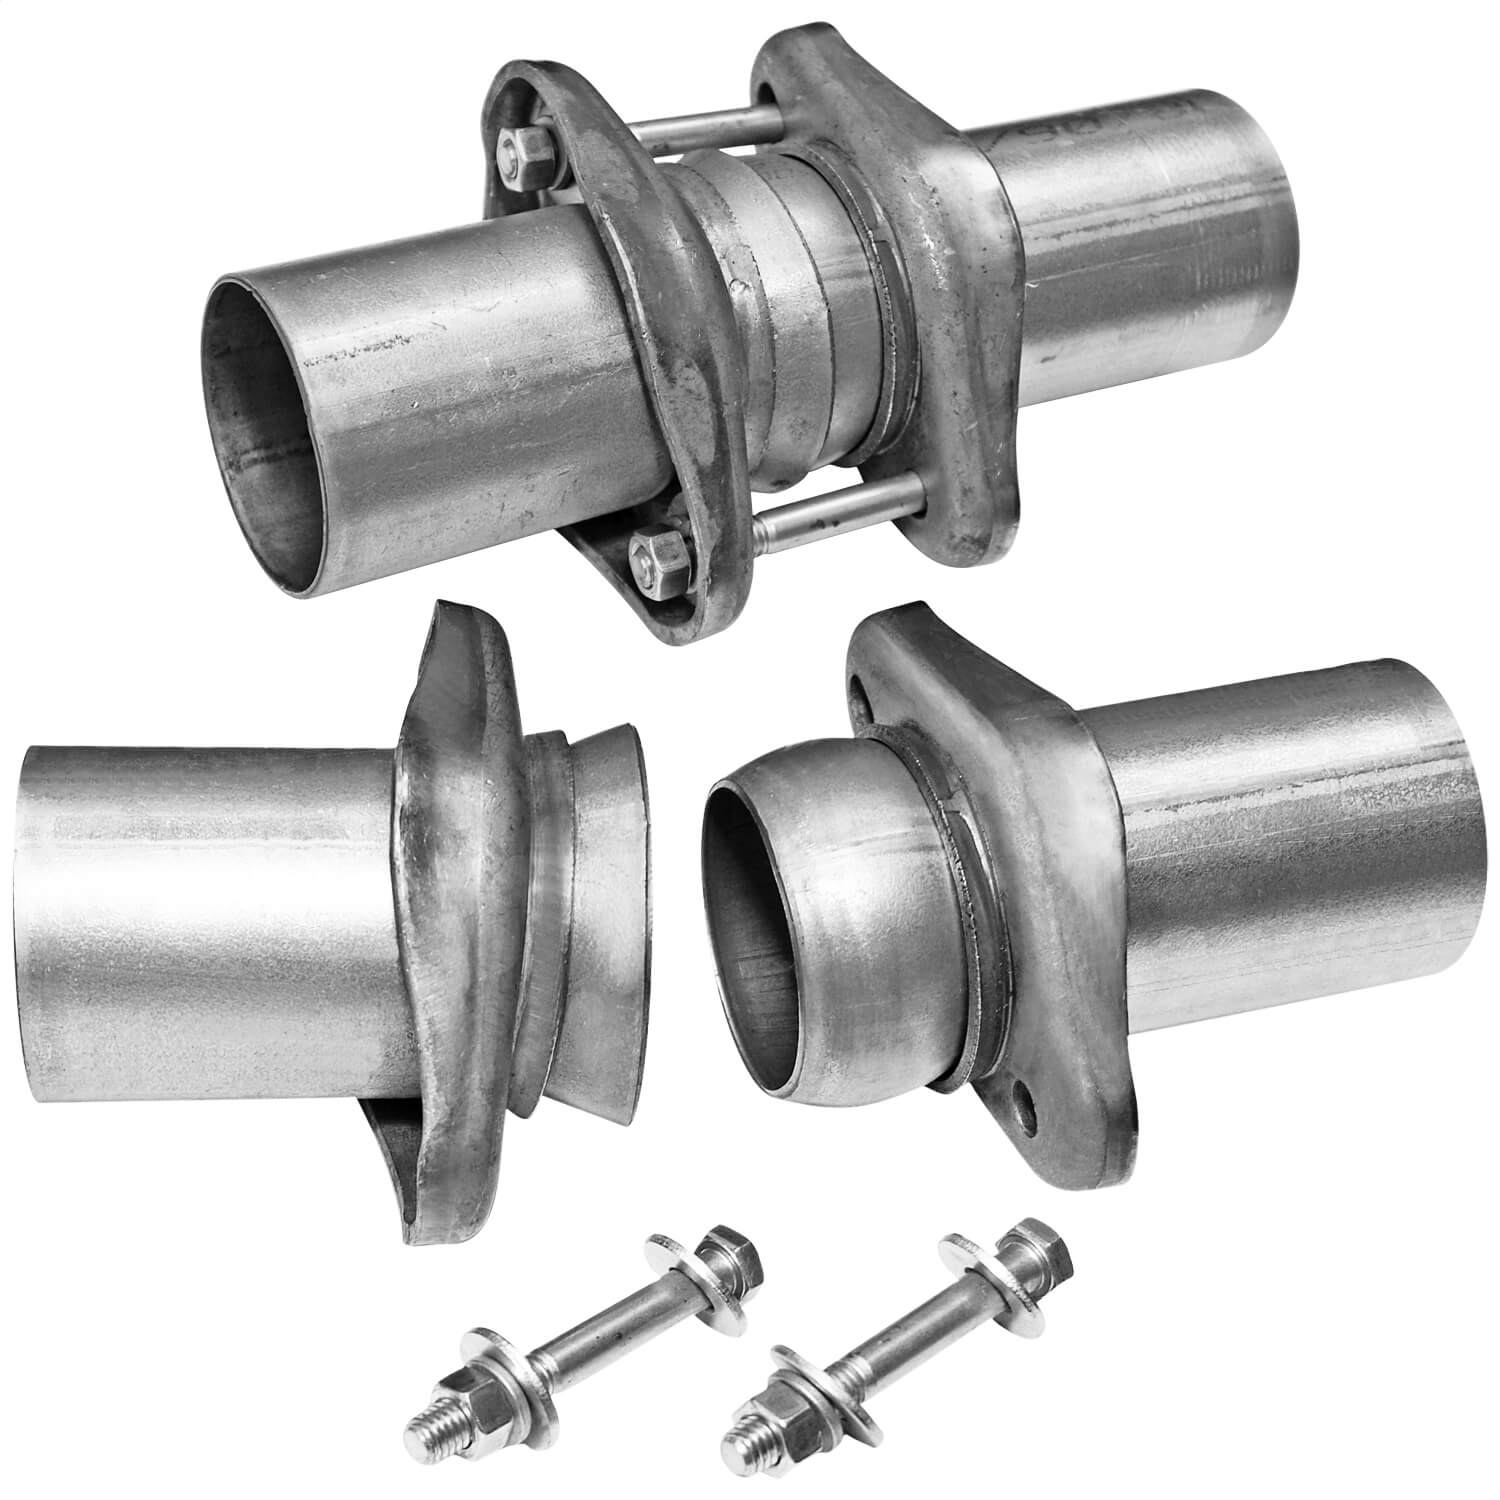 Flowmaster 15925 Header Collector Ball Flange Kit